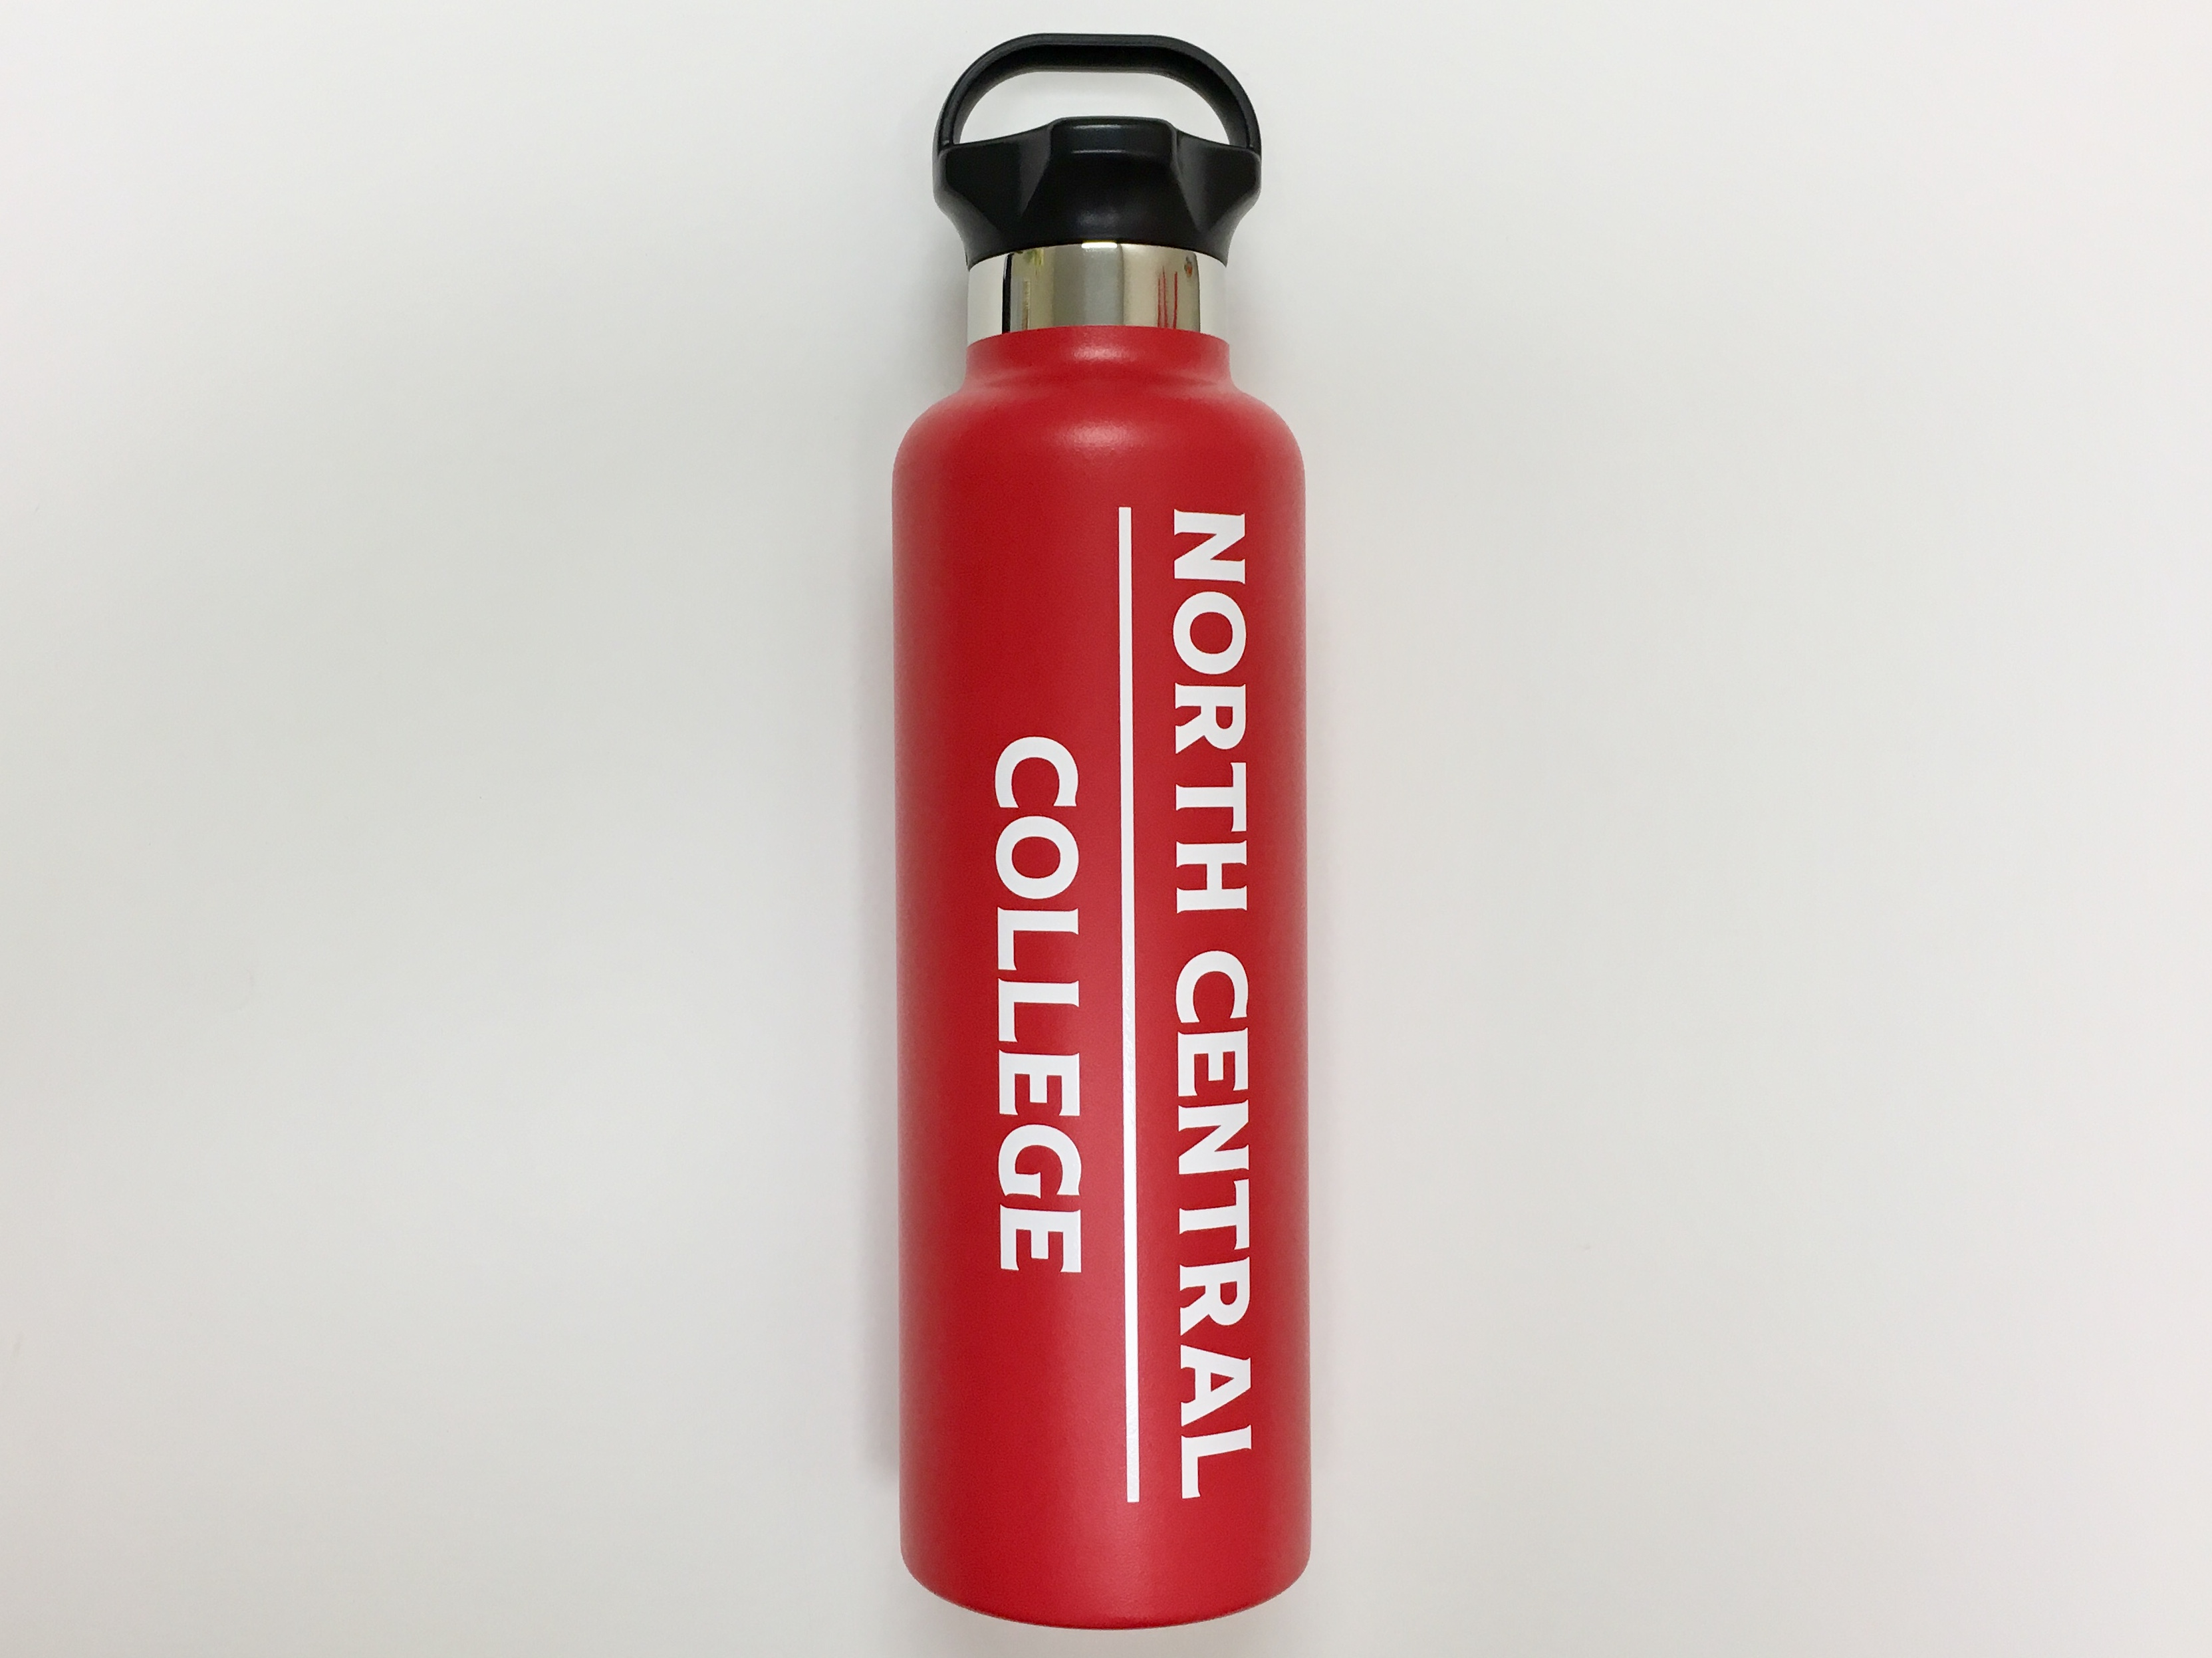 Image for the H2Go 25oz. Ascent Stainless Steel Insulated Bottle product